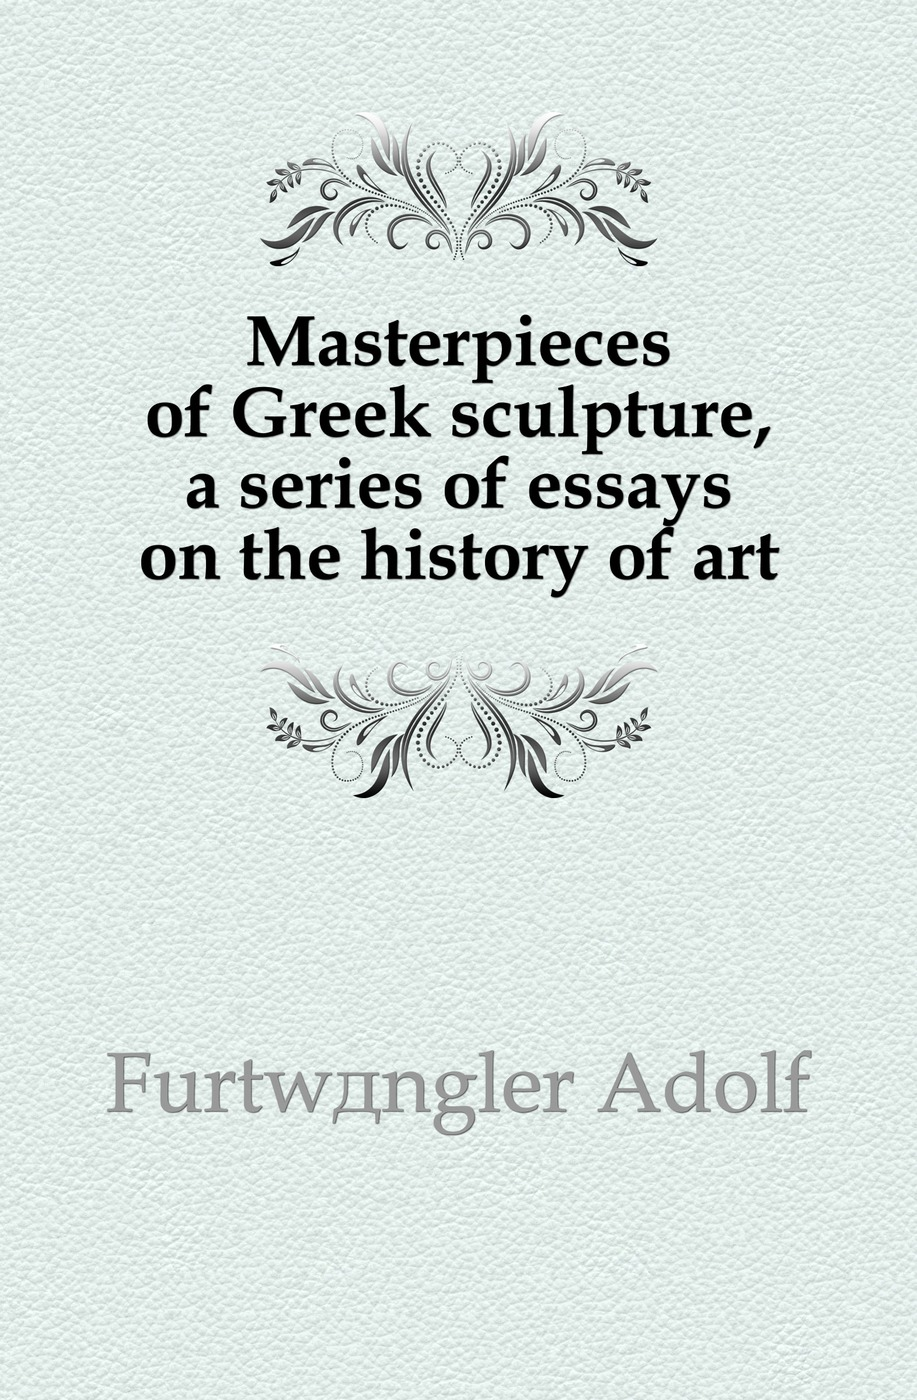 Masterpieces of Greek sculpture, a series of essays on the history of art